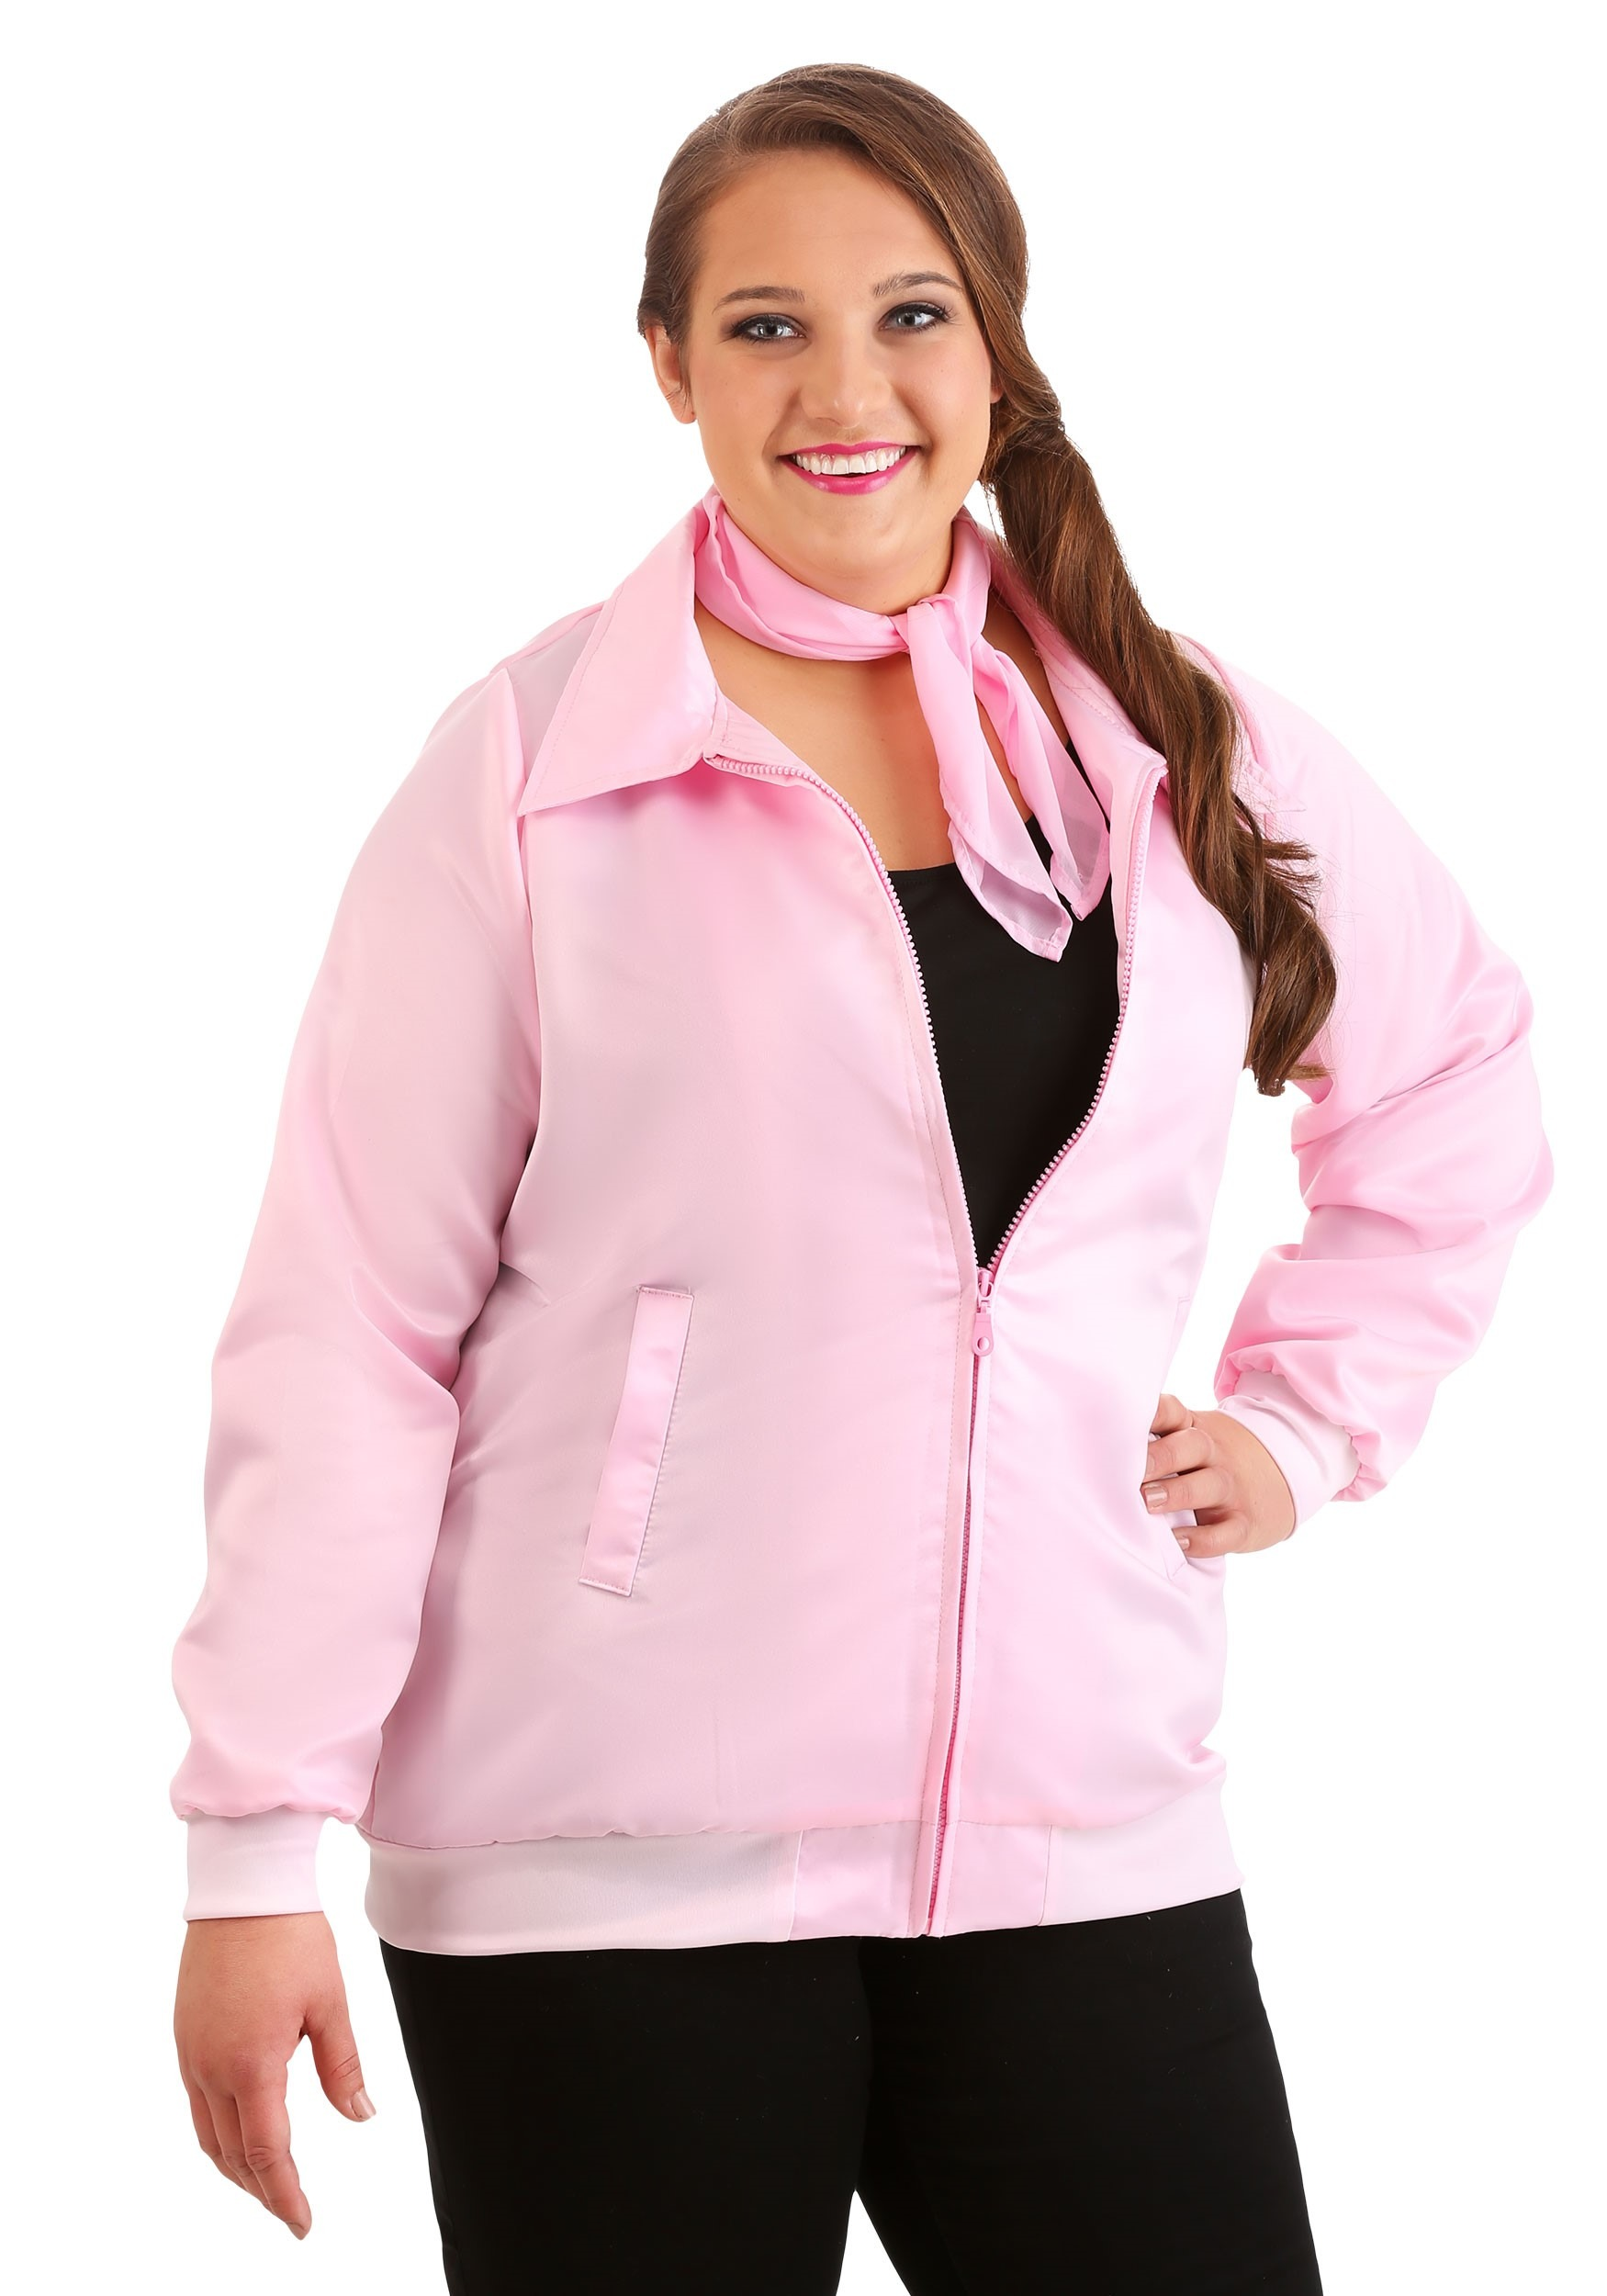 Plus Size Grease Pink Ladies Costume Jacket for Women